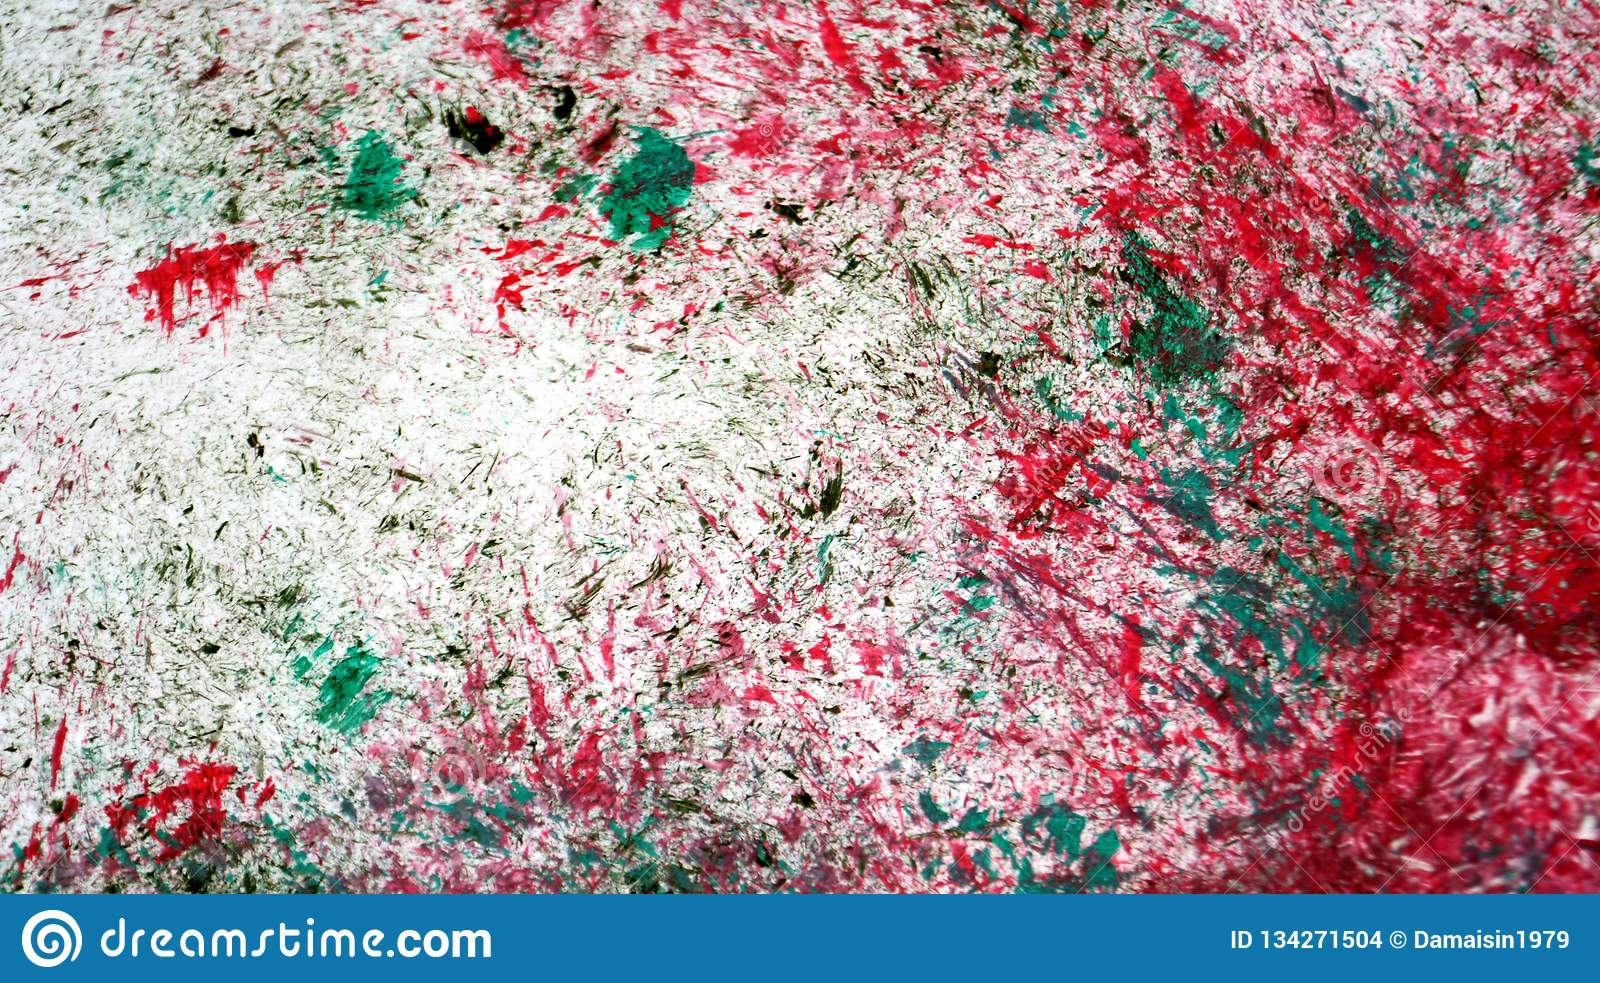 Red silver green mix soft contrasts, paint watercolor background, abstract painting watercolor background